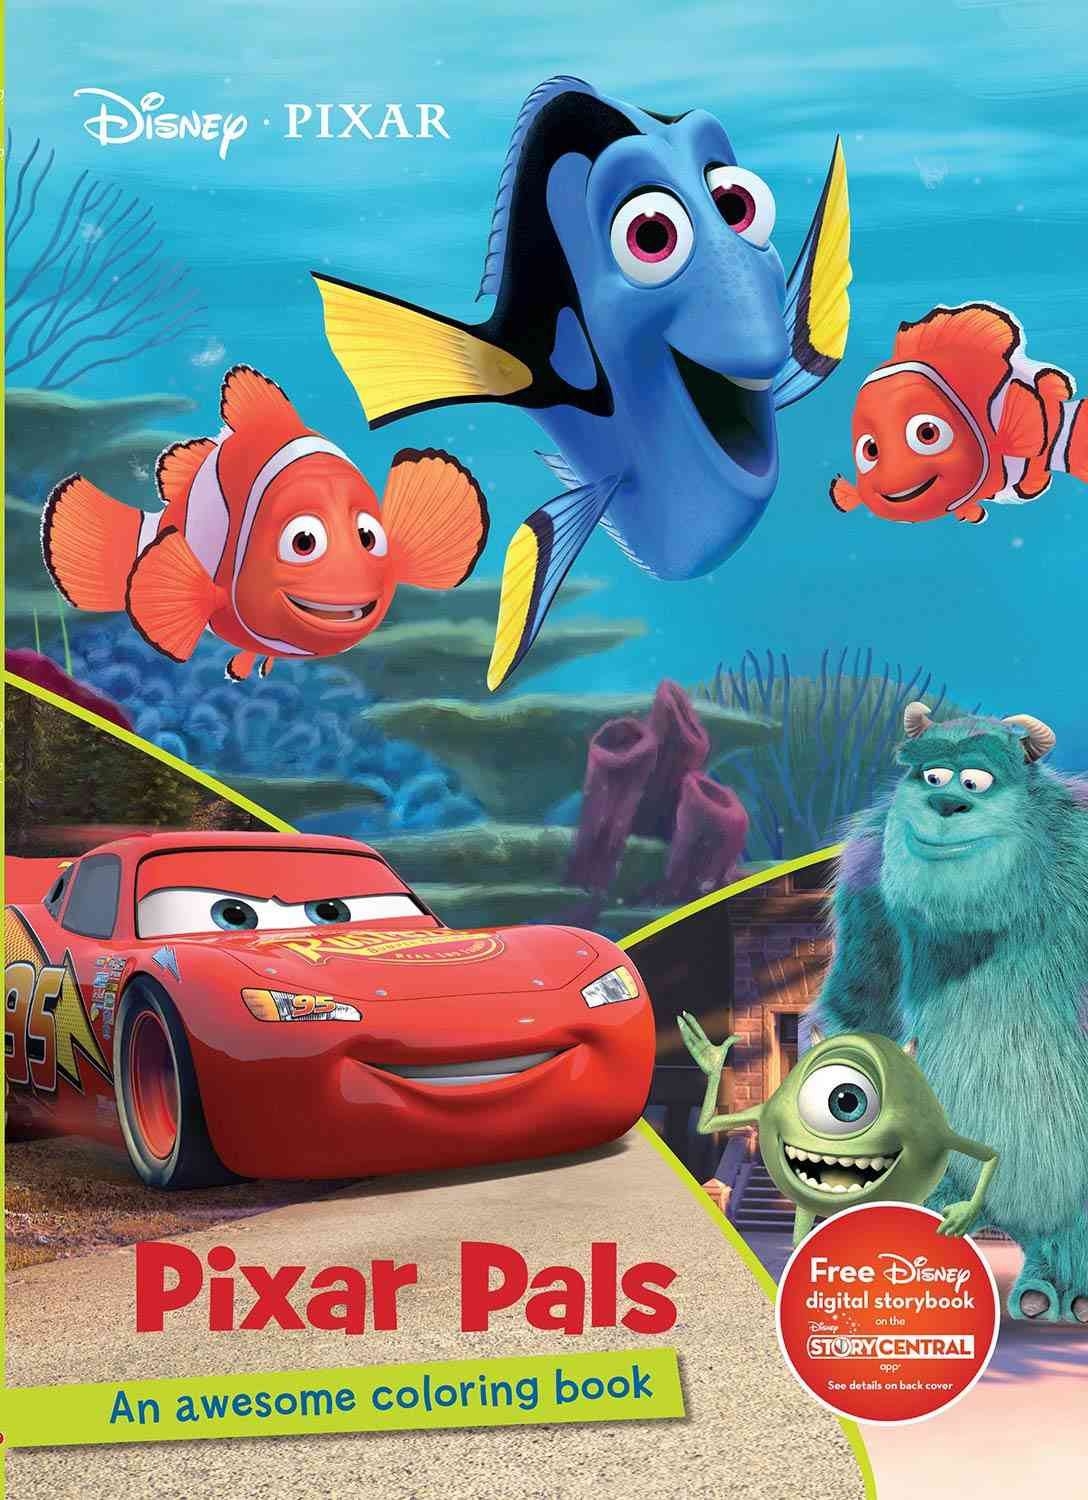 Pixar Pals Coloring Book